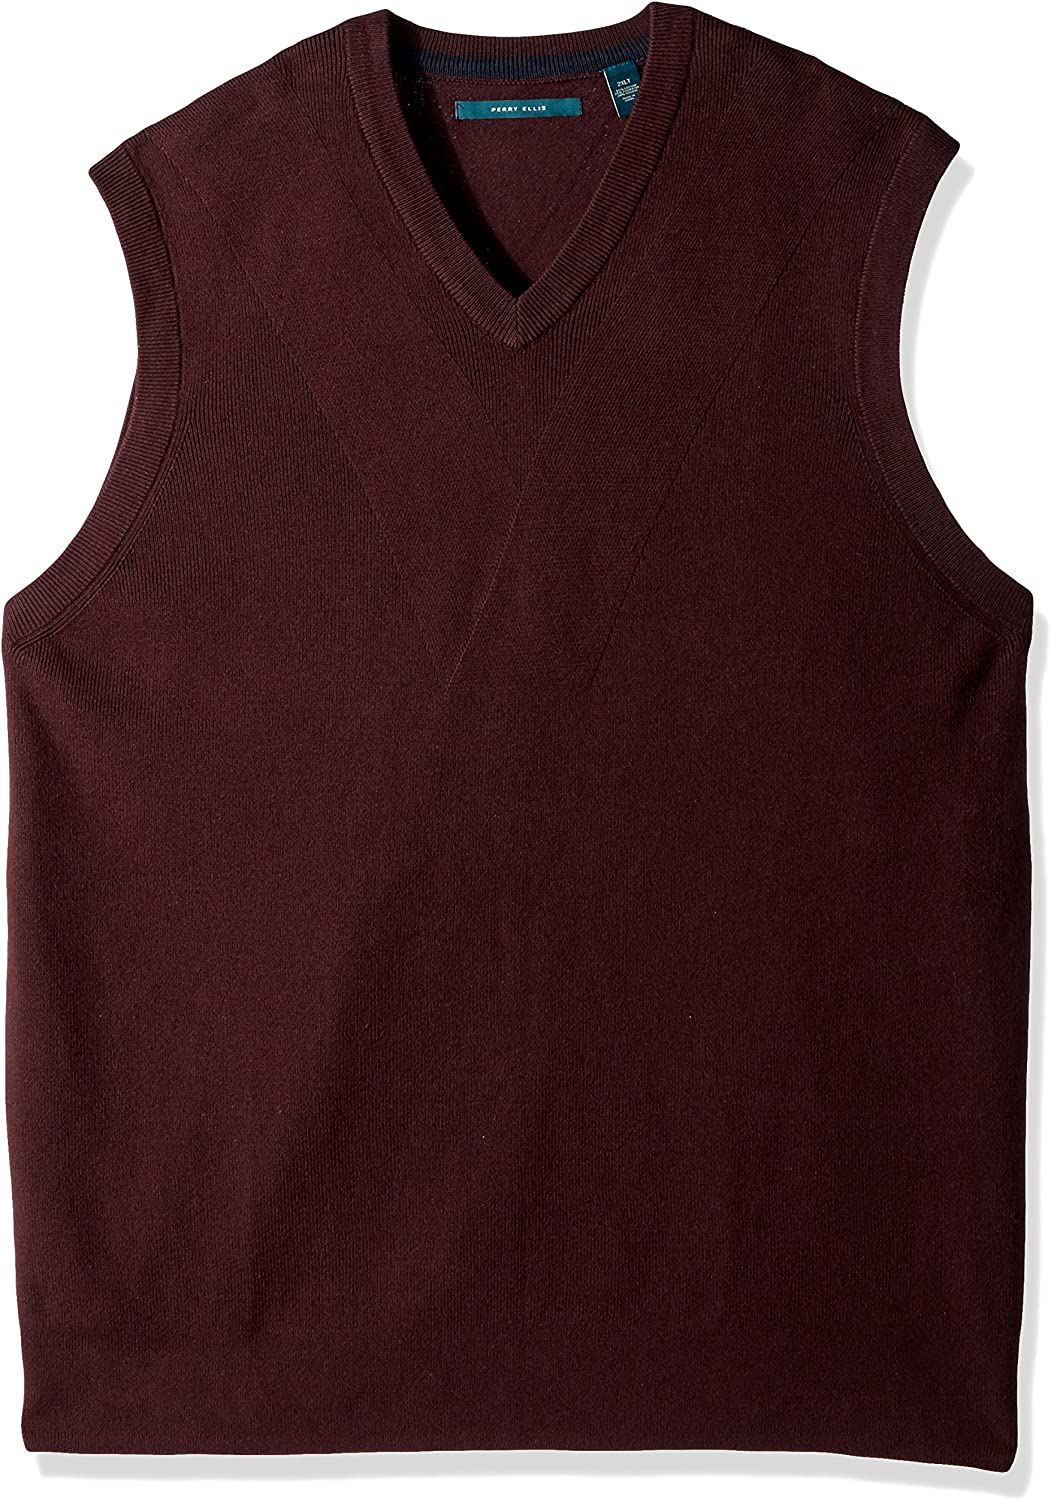 Perry Ellis Men's Big and Tall Pullover V-Neck Sweater Vest